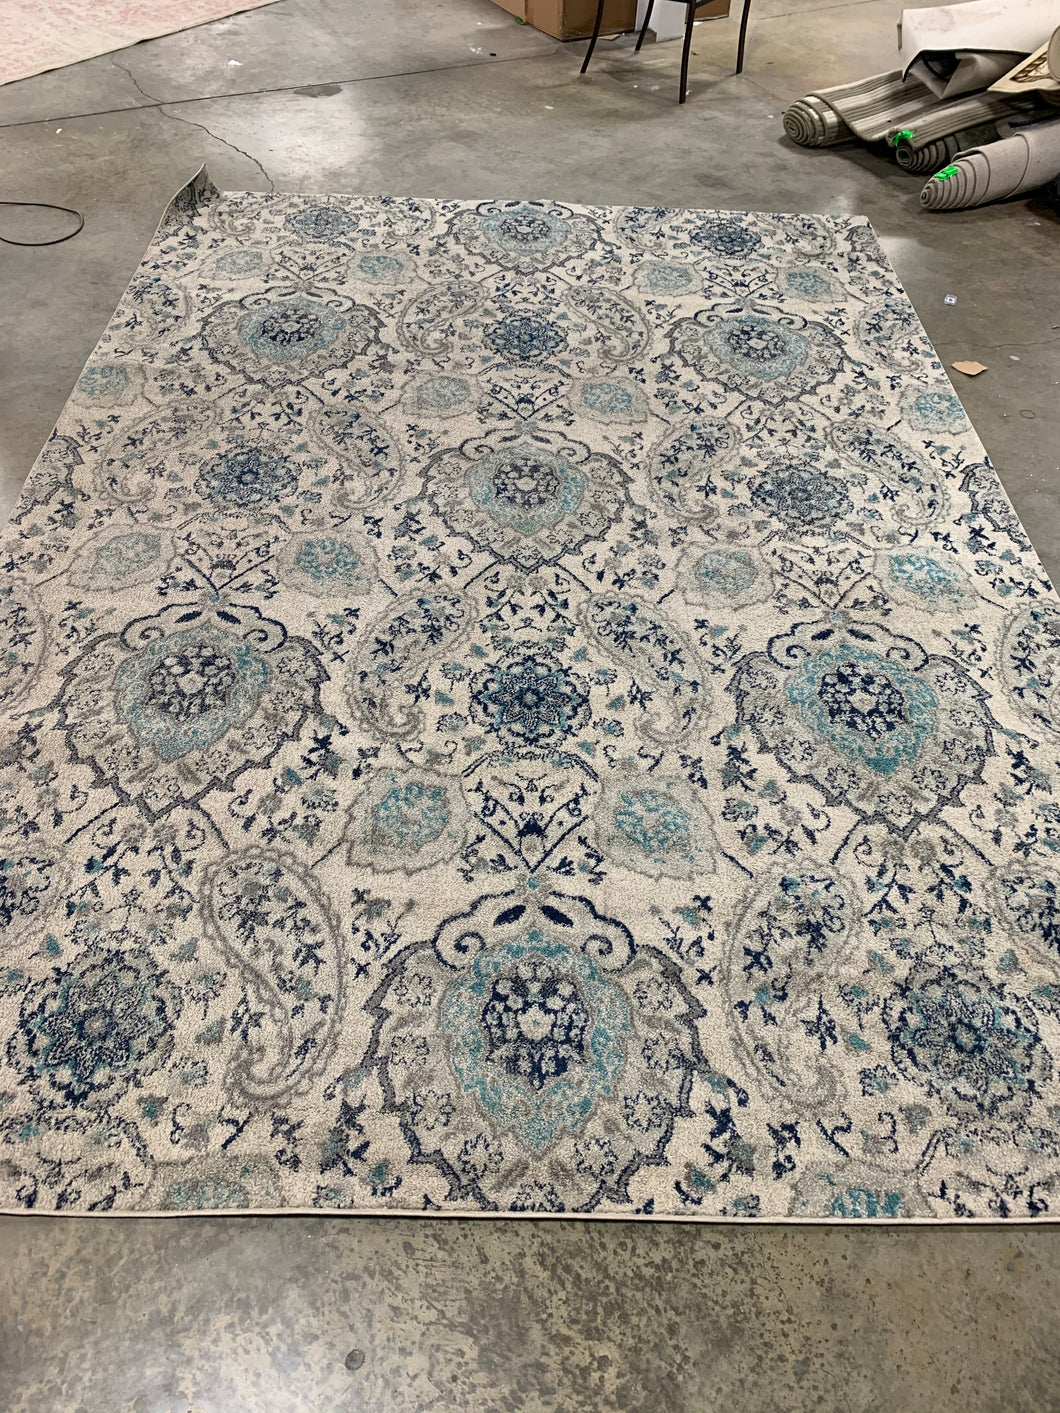 White and Marine Blue Area Rug, 9'x12' (#19R)